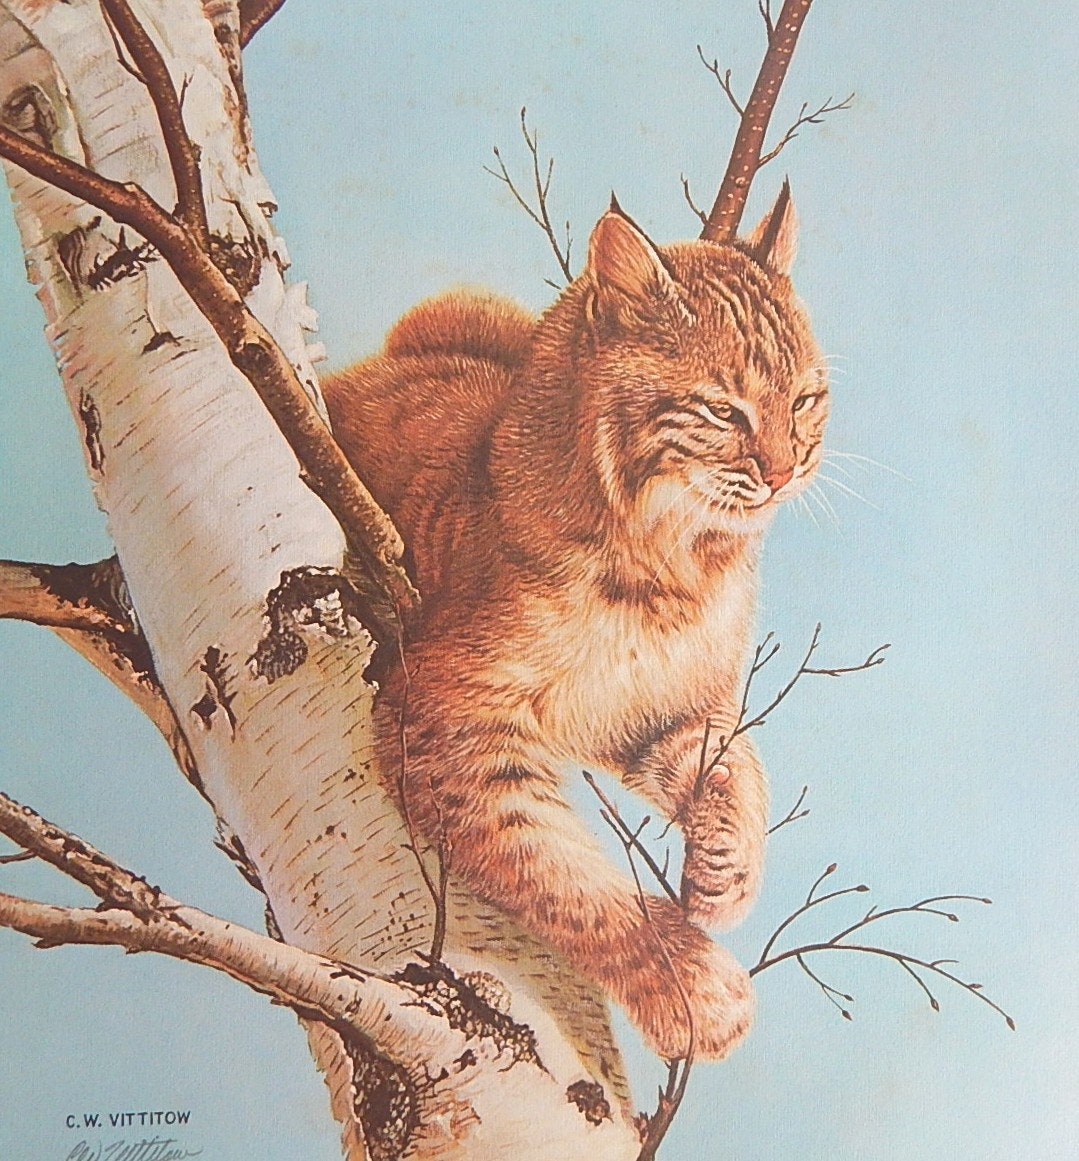 "C.W. Vittitow ""Kentucky Wildcat"" Signed Artist Proof Limited Offset Lithograph"